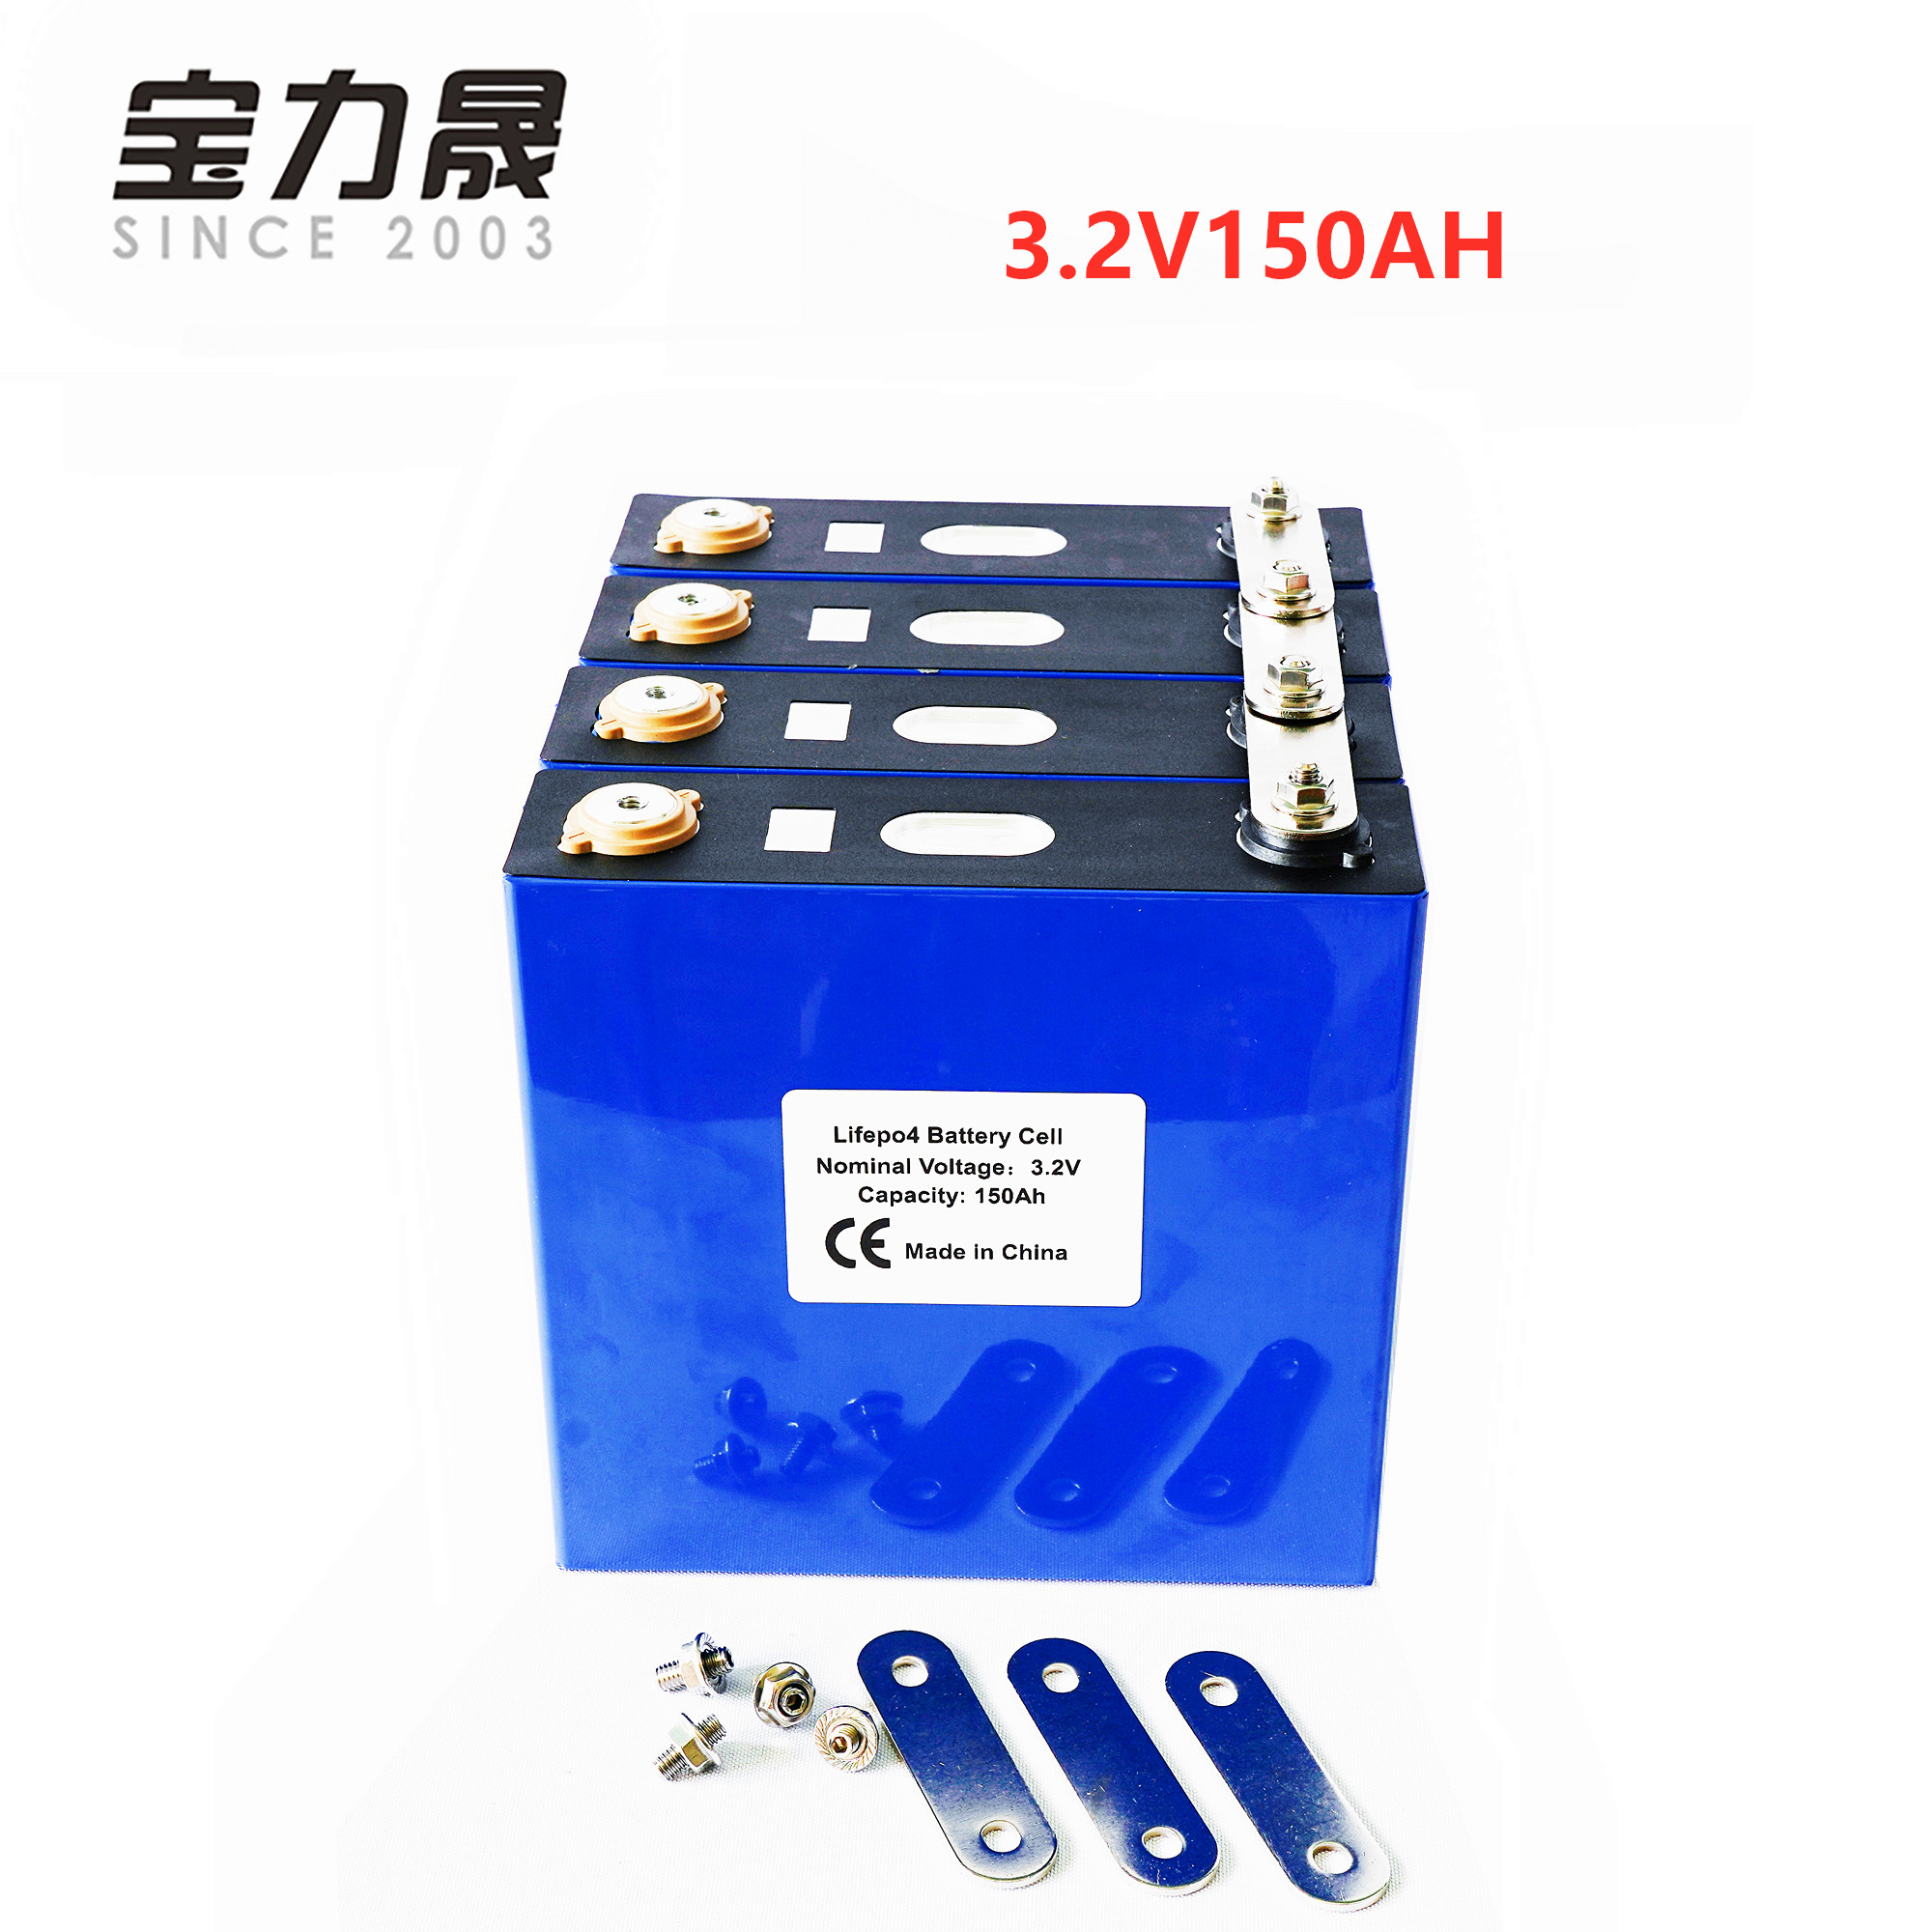 4PCS 3 2V 150Ah Lithium Iron Phosphate Cell lifepo4 battery Cycle 4000 Times 3C Solar 12V 150Ah cells not 120Ah EU US TAX FREE in Replacement Batteries from Consumer Electronics